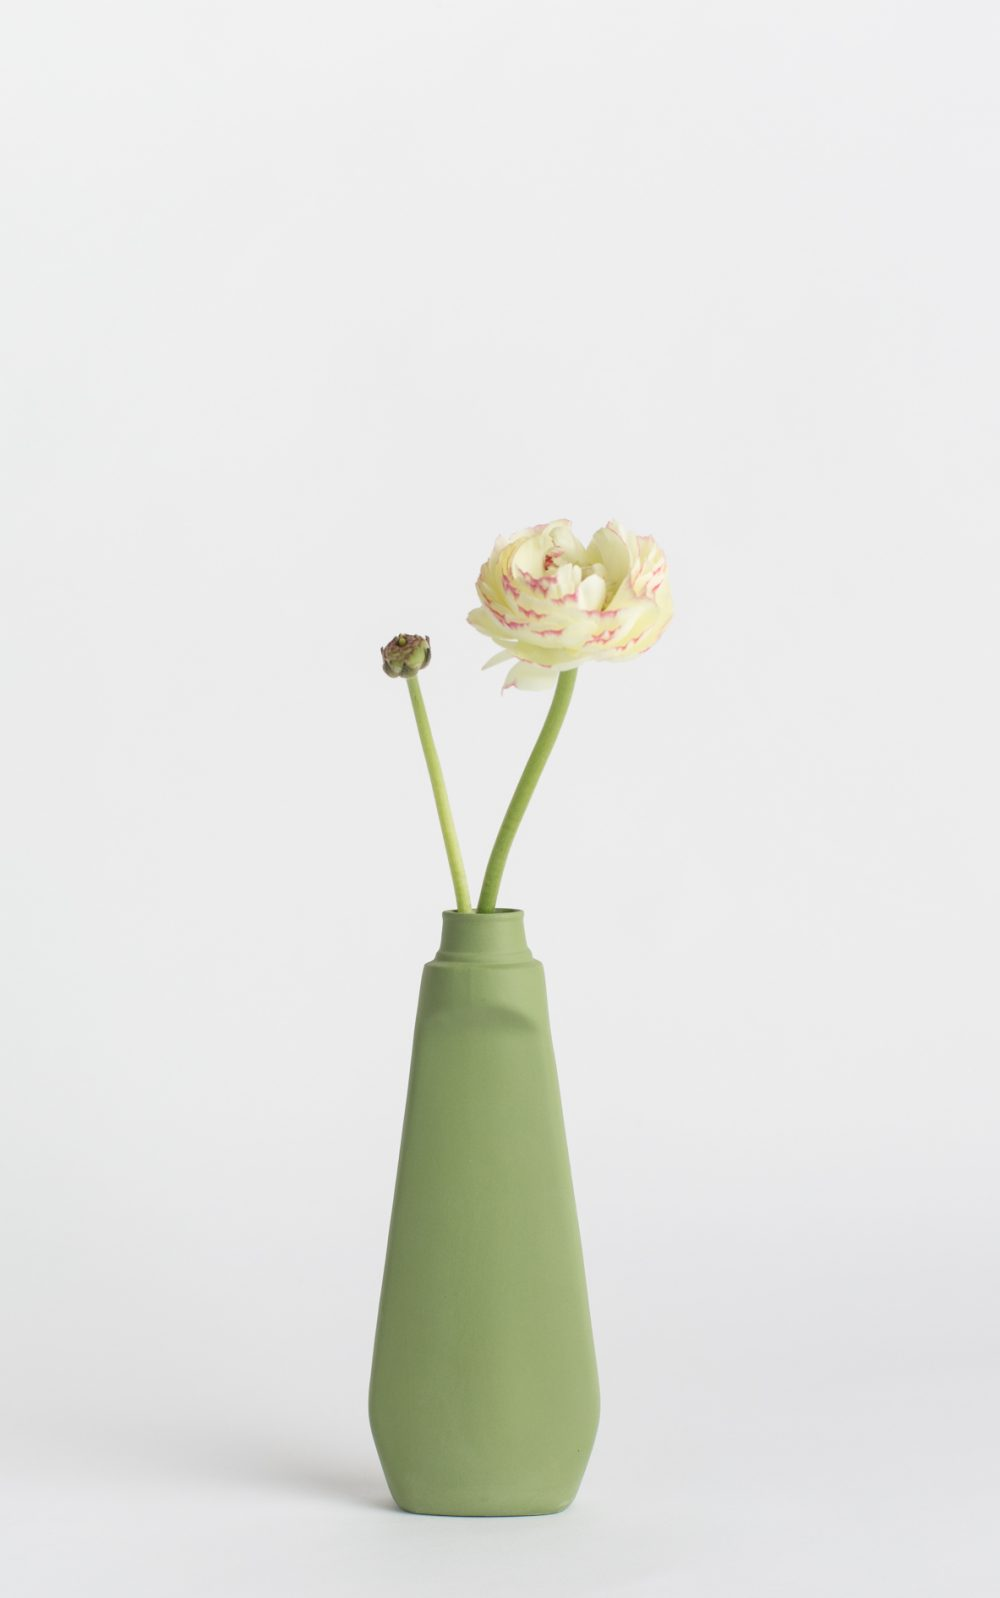 bottle vase #4 dark green with flower